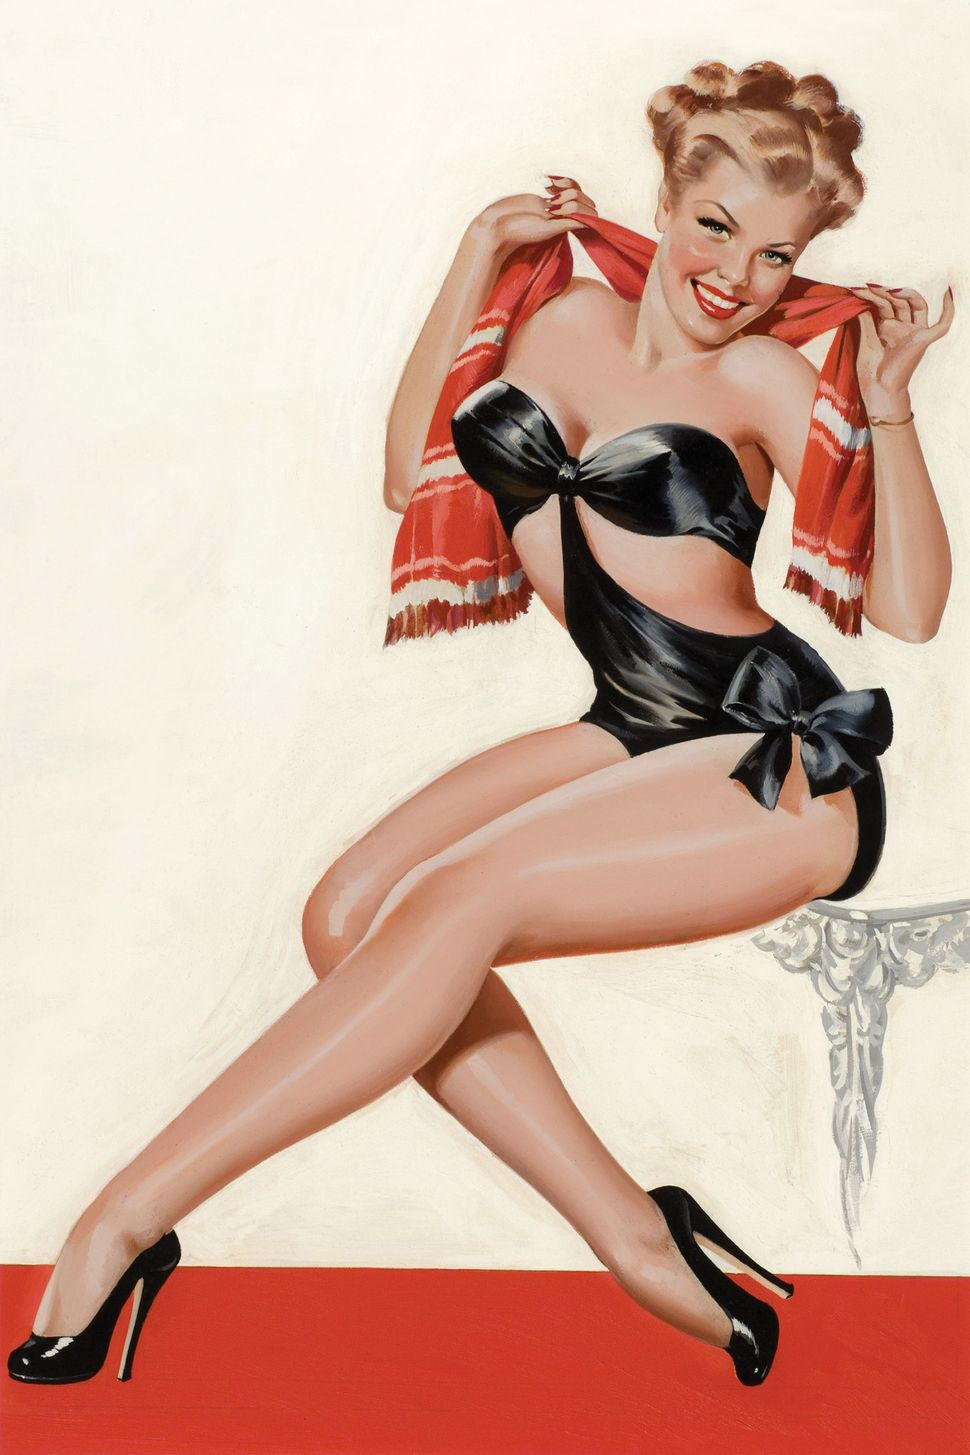 Pin By Dani Daemon On Boys And Girls: Your Visual Guide To The Timeless Queens Of Pin-Up